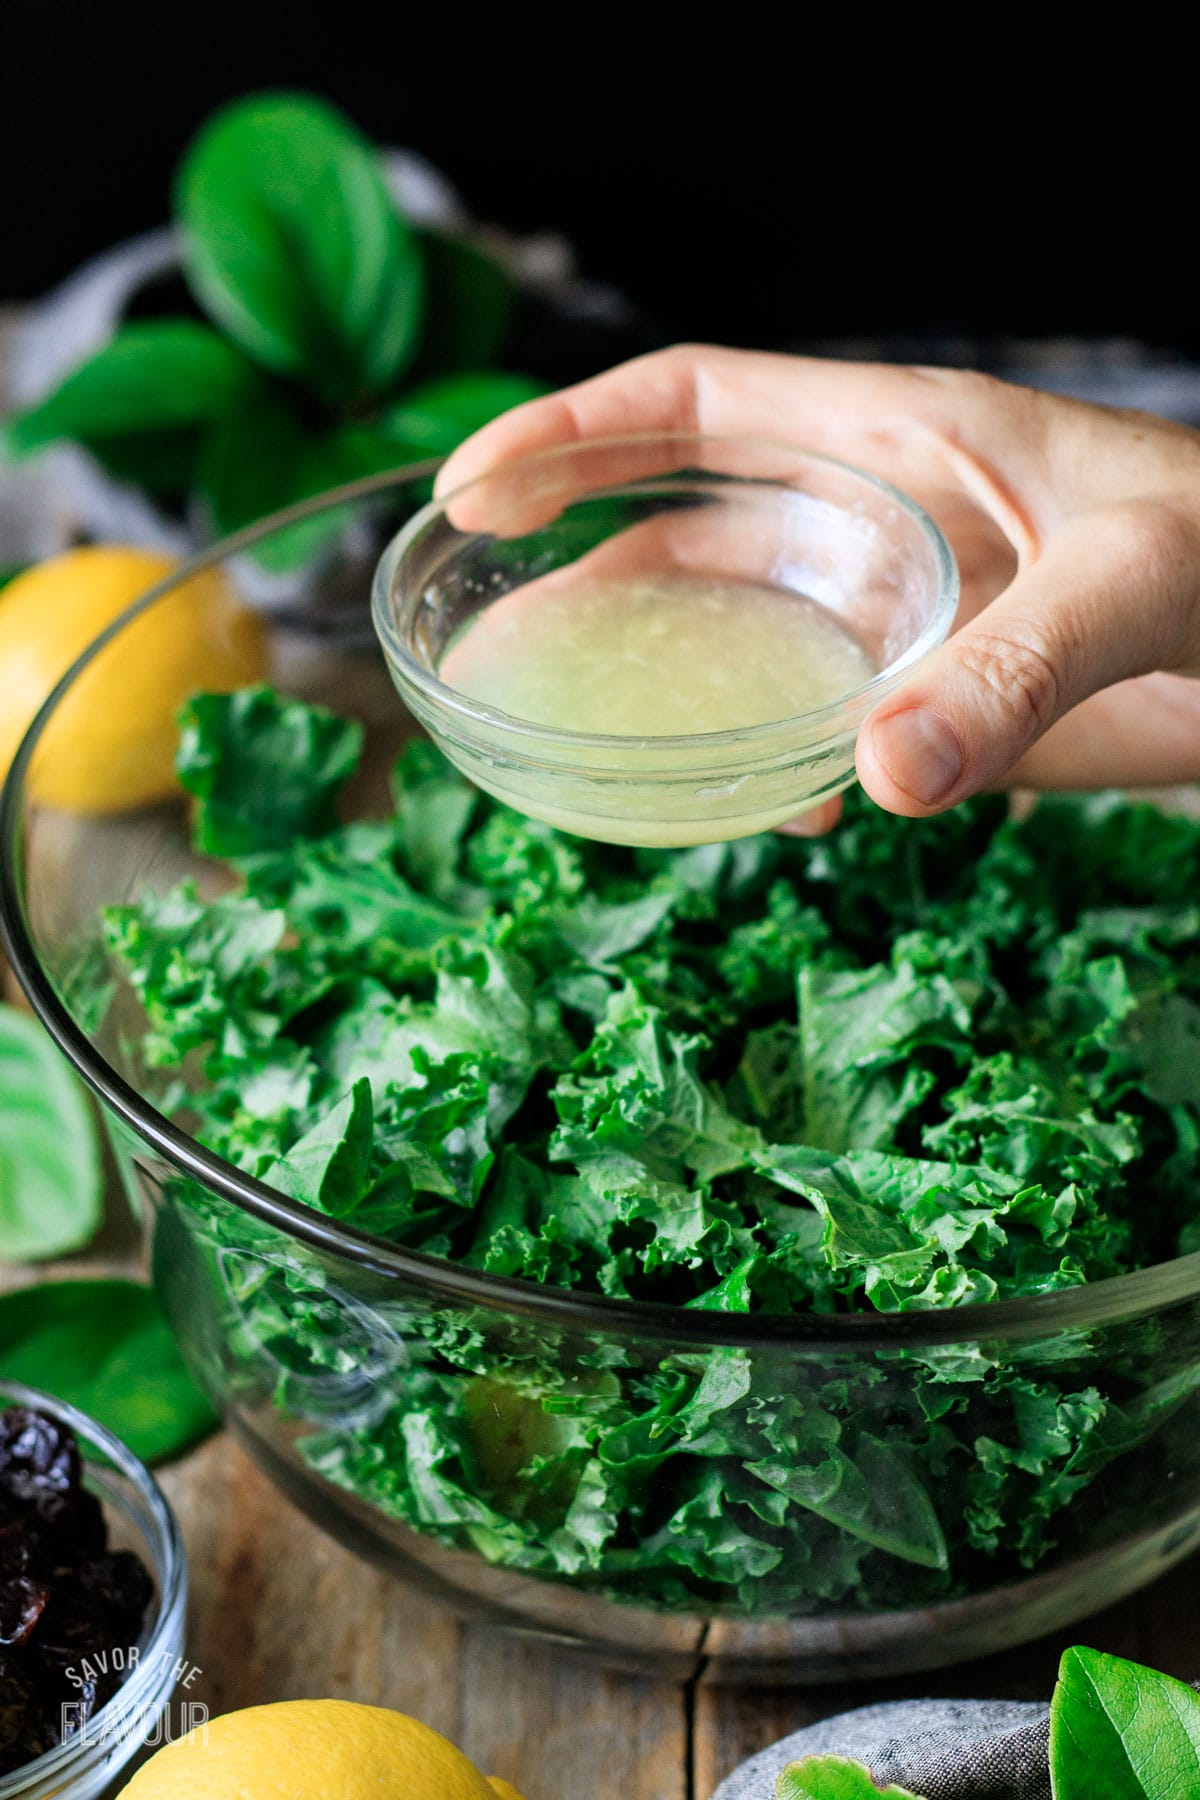 person holding a bowl of lemon juice over top of the kale